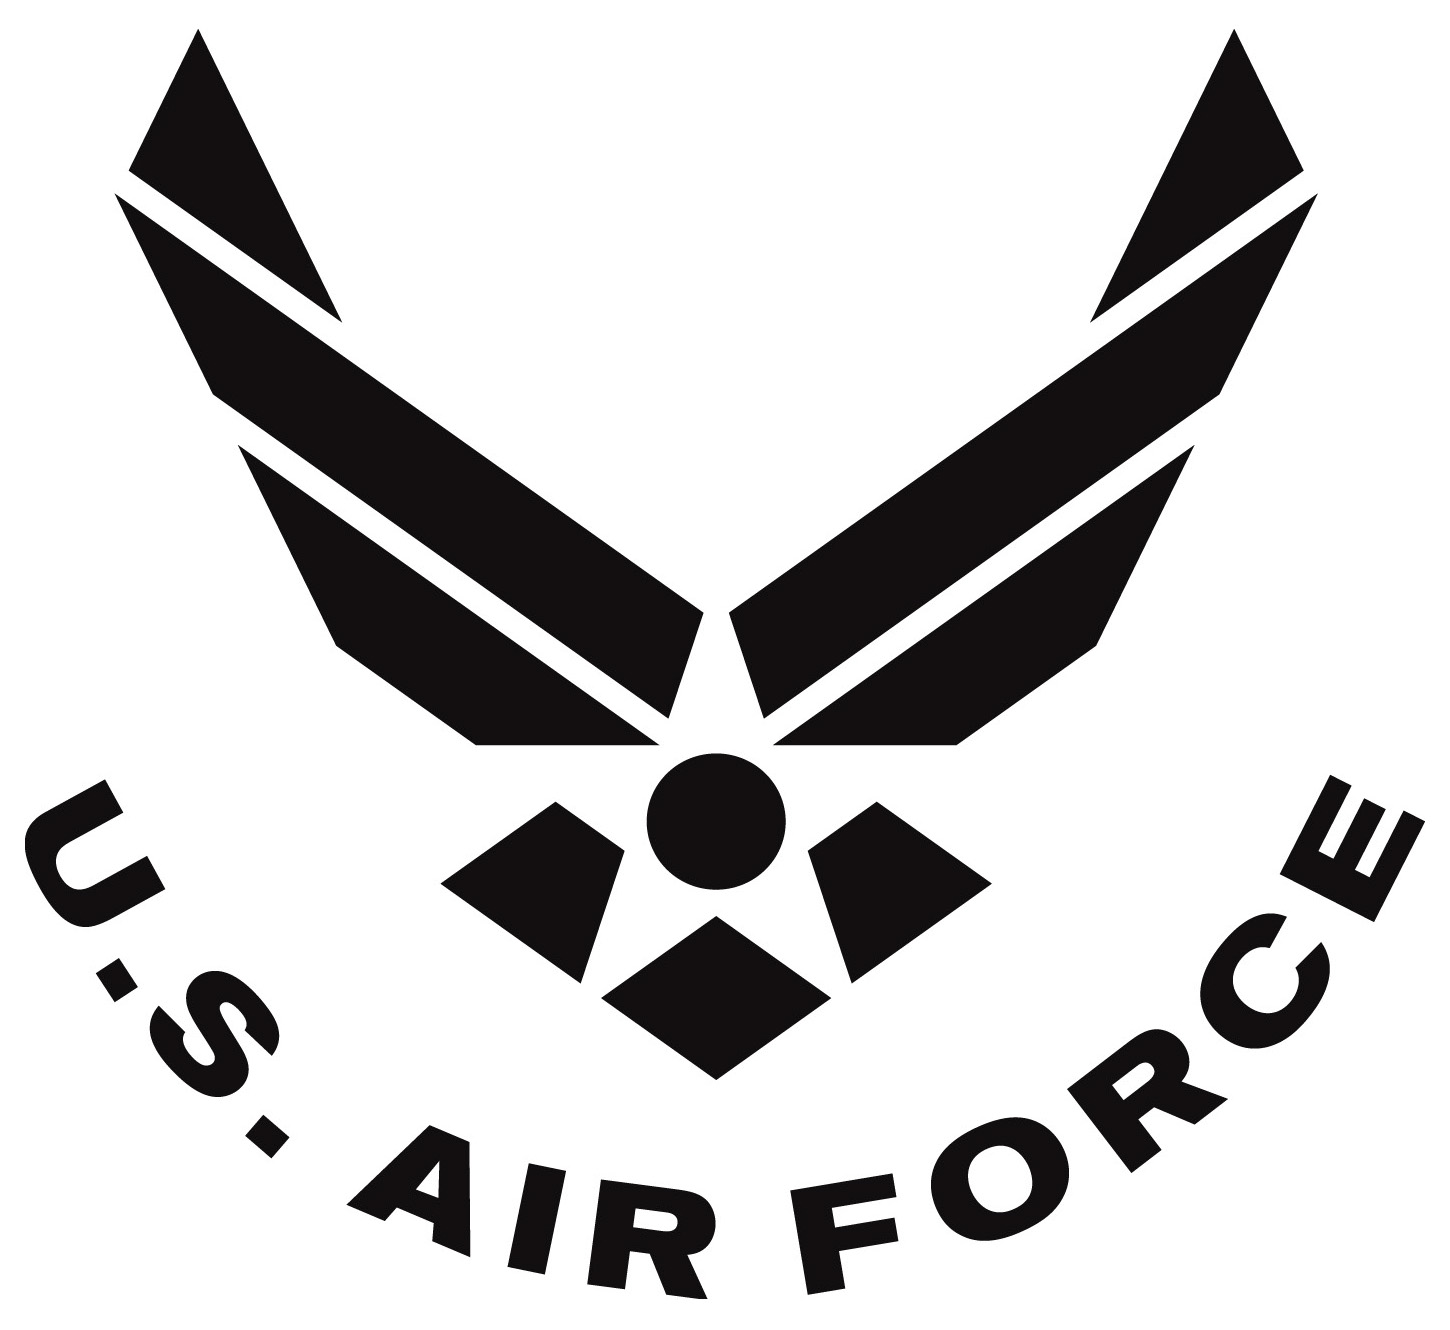 Air Force symbol, curved text, black